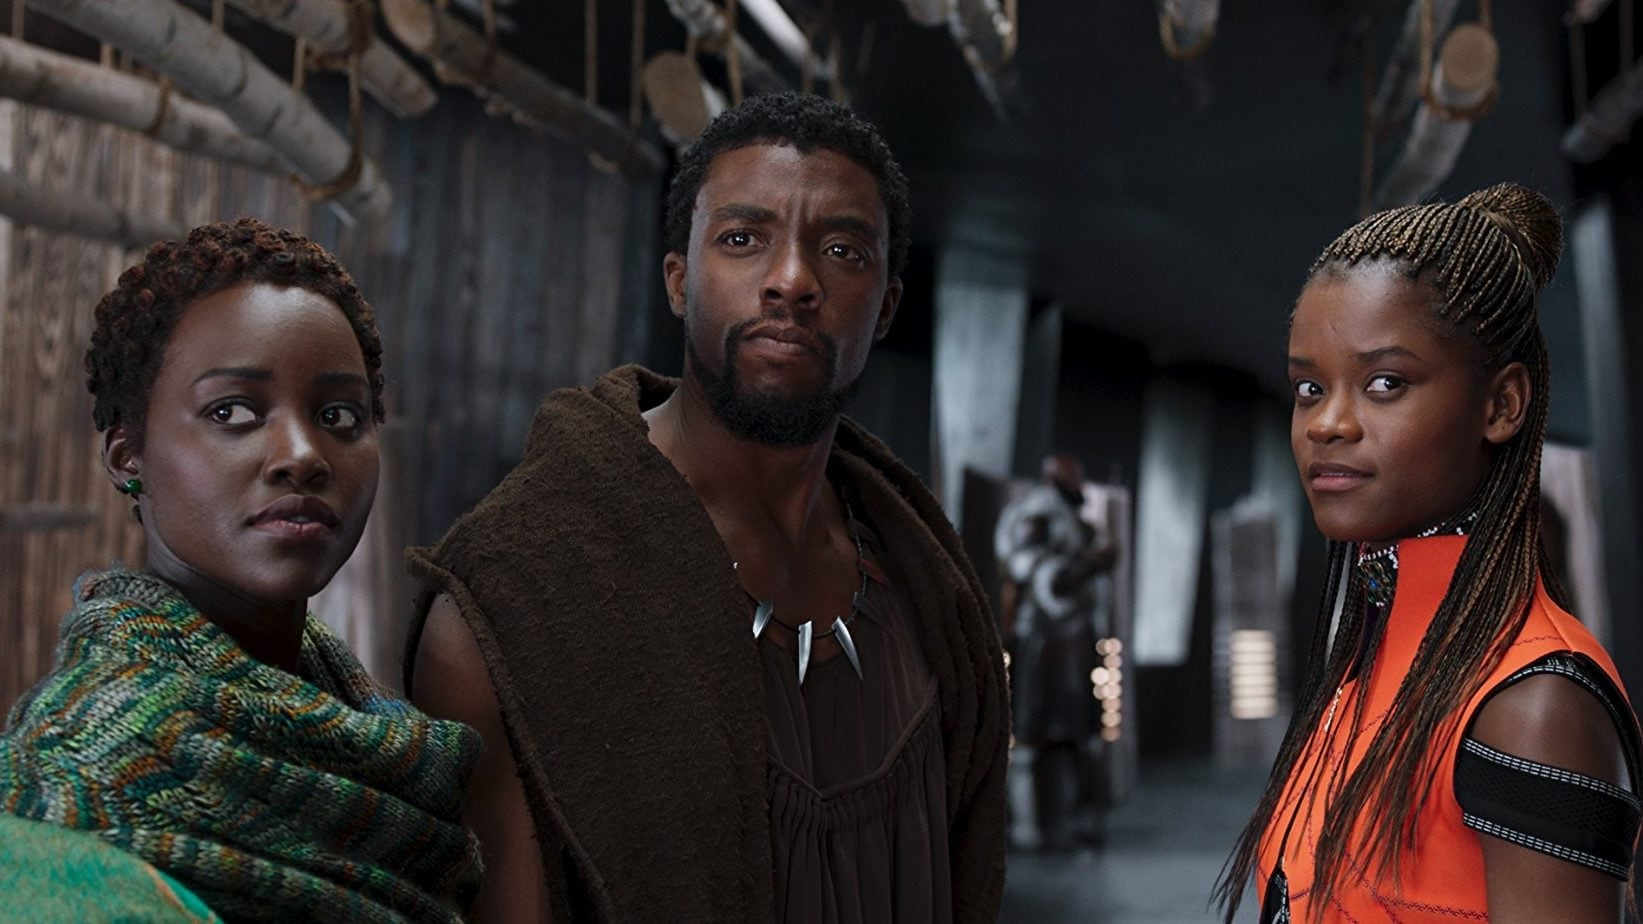 Black Panther sails past Titanic, becomes highest grosser in US